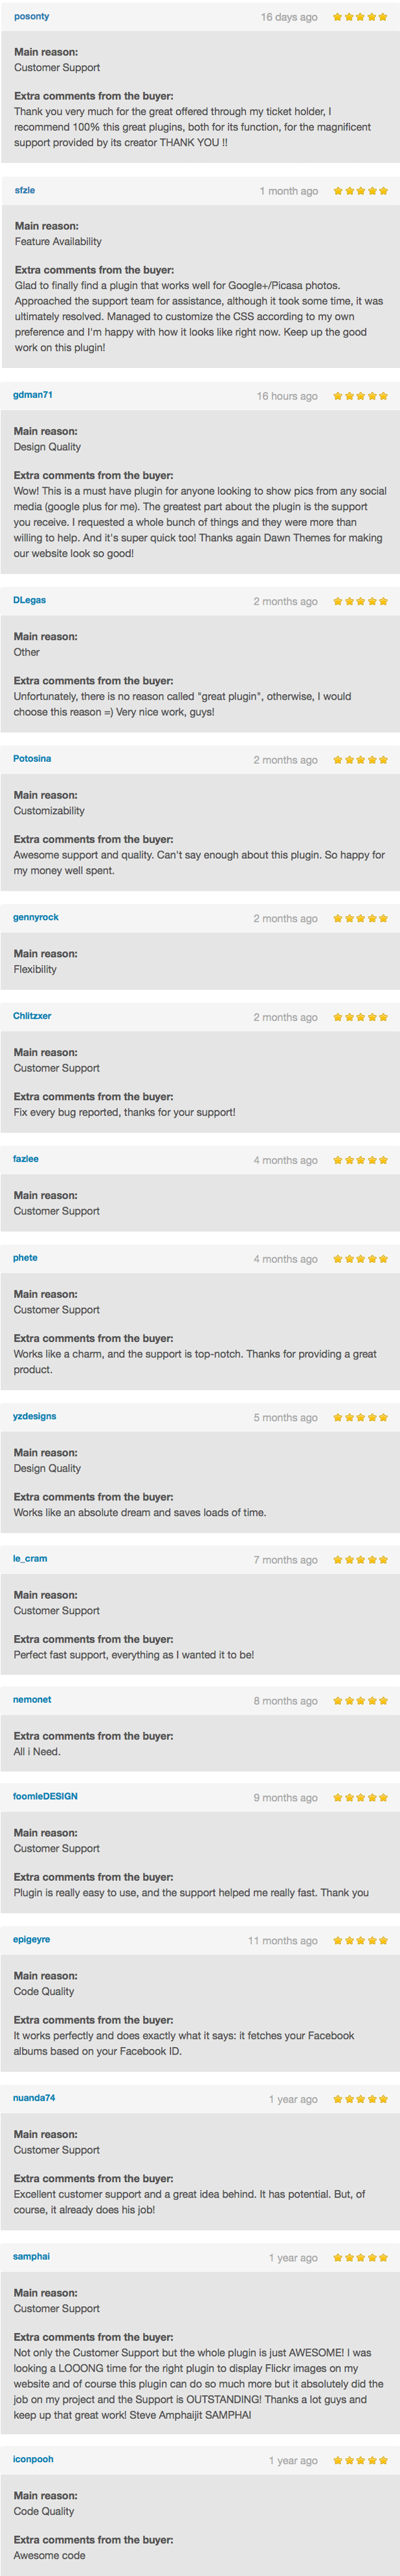 Reviews for Plus Gallery